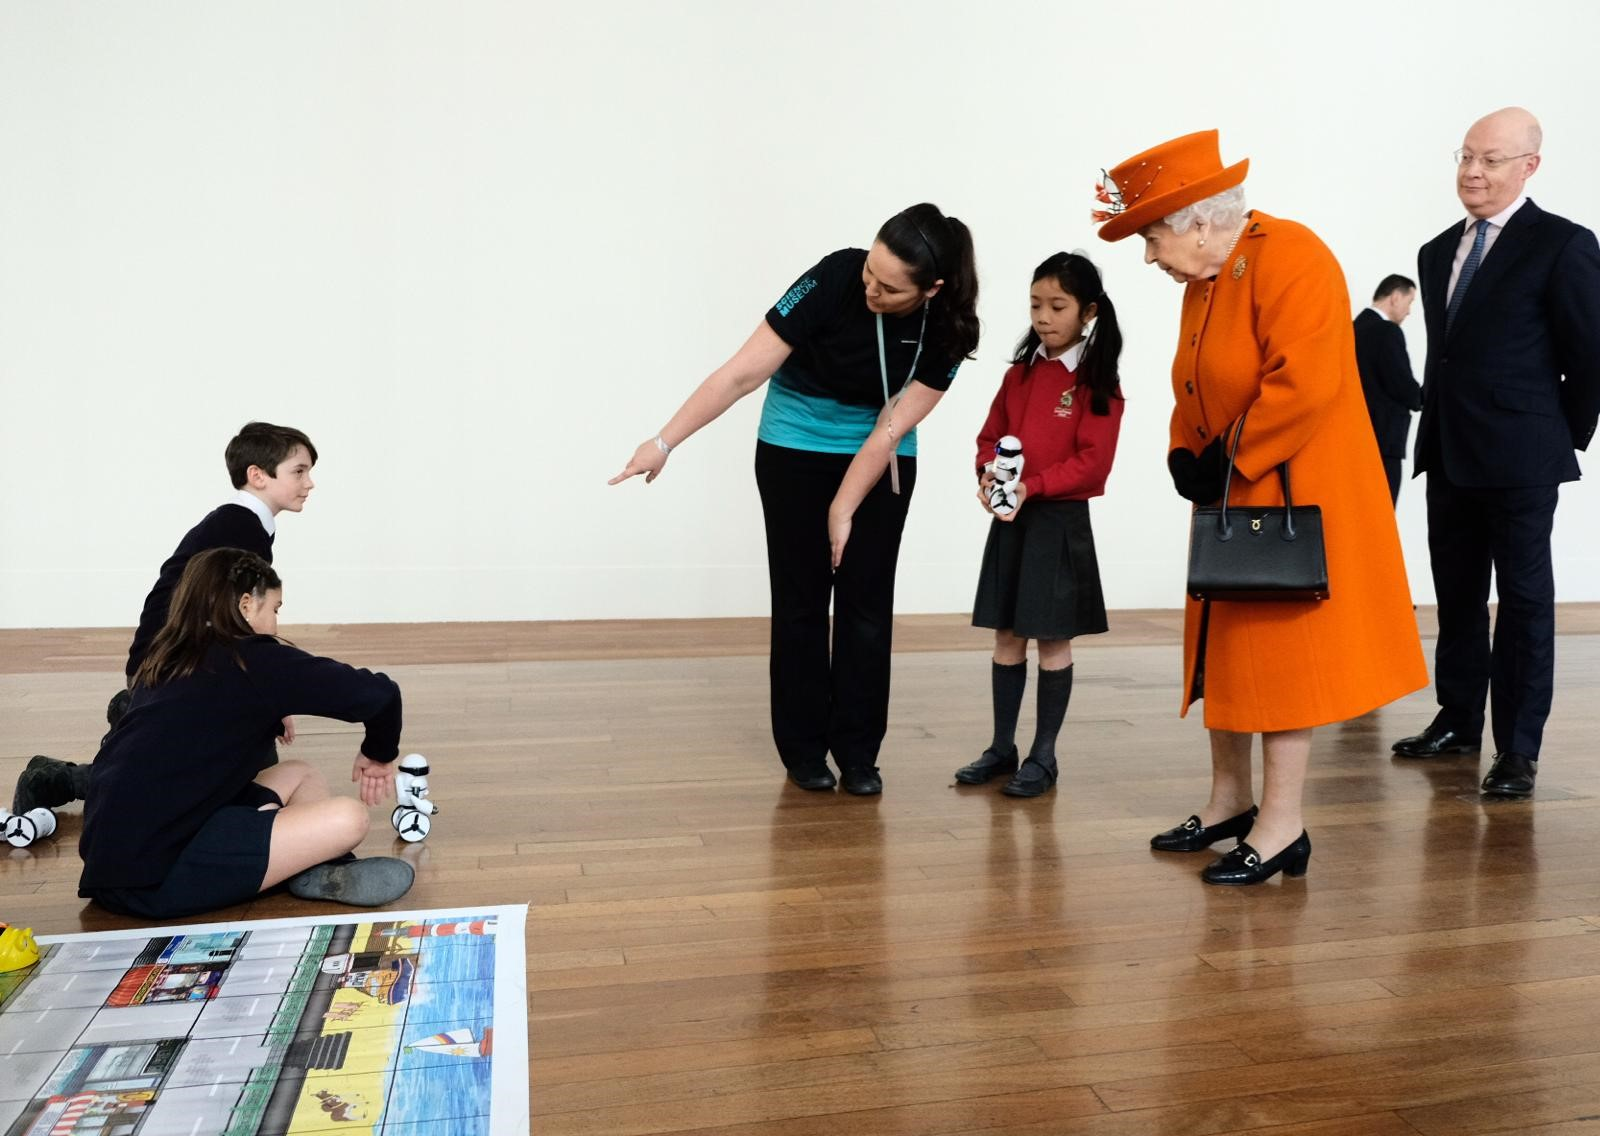 The Queen visits the science museum 2019